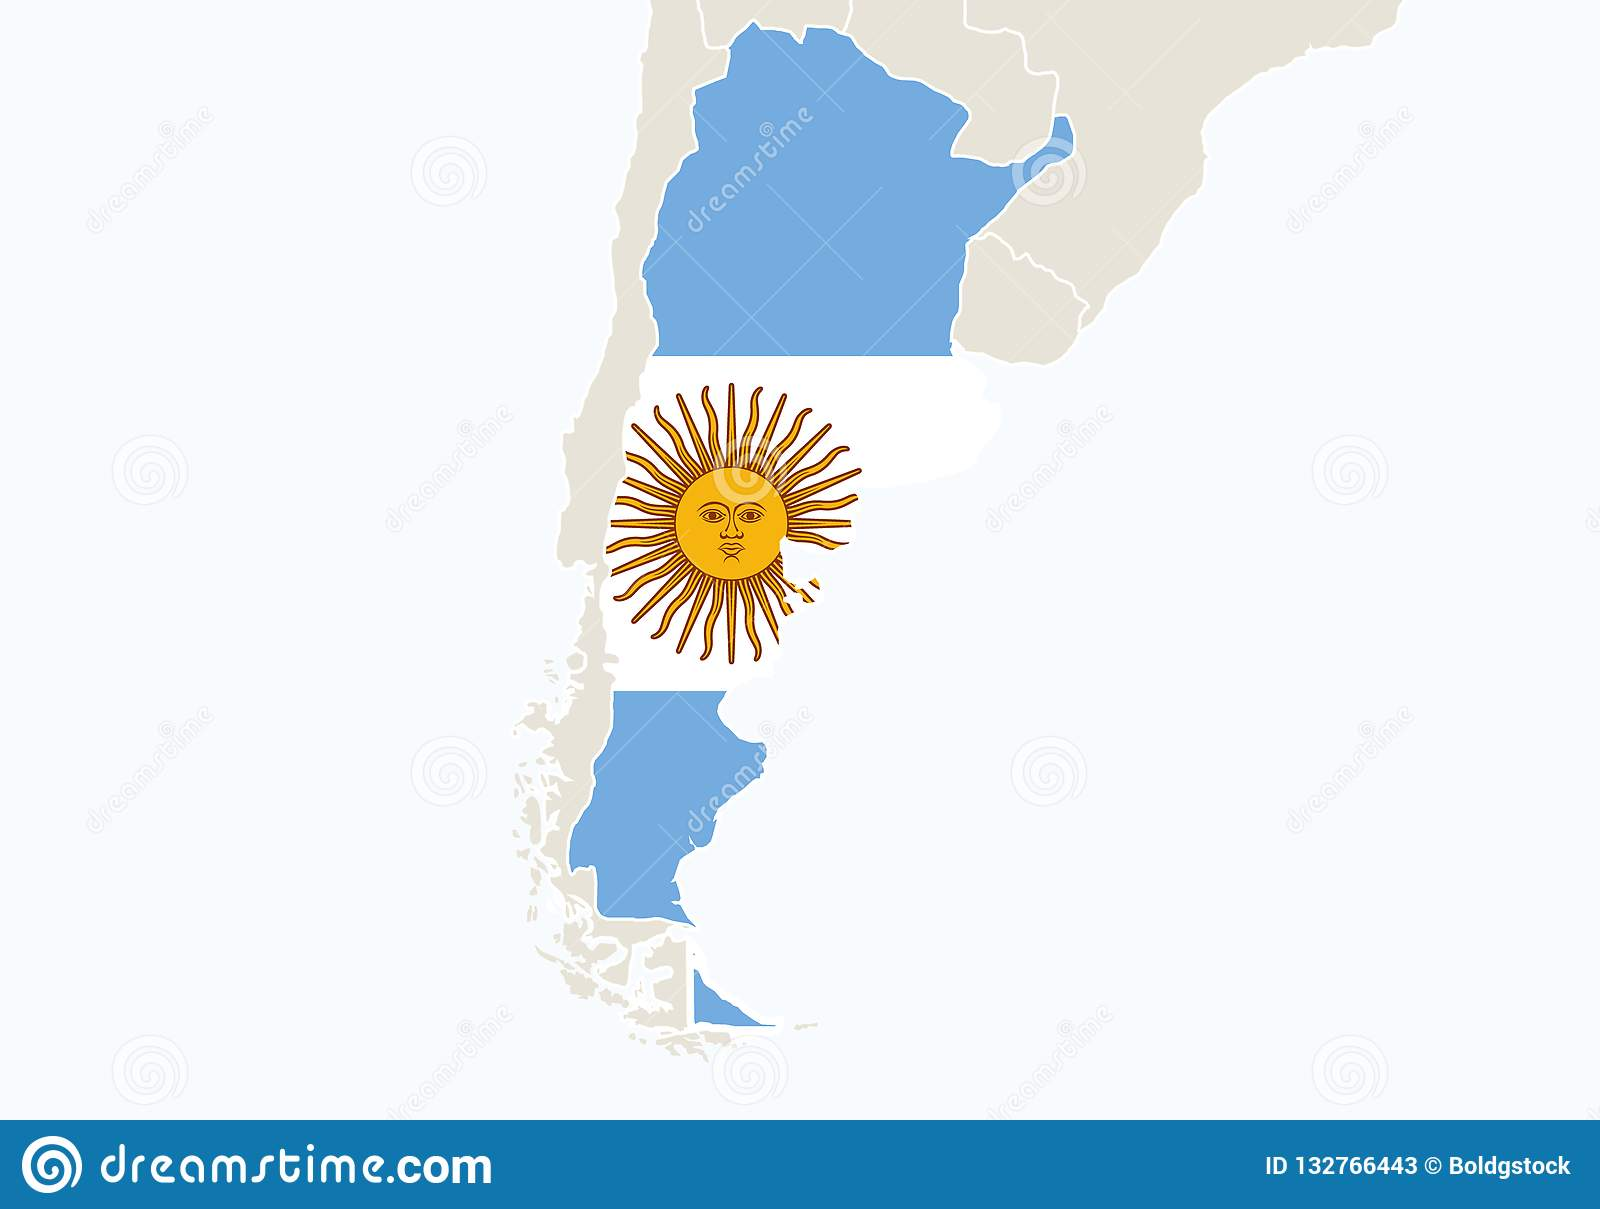 South America With Highlighted Argentina Map Stock Vector ... on